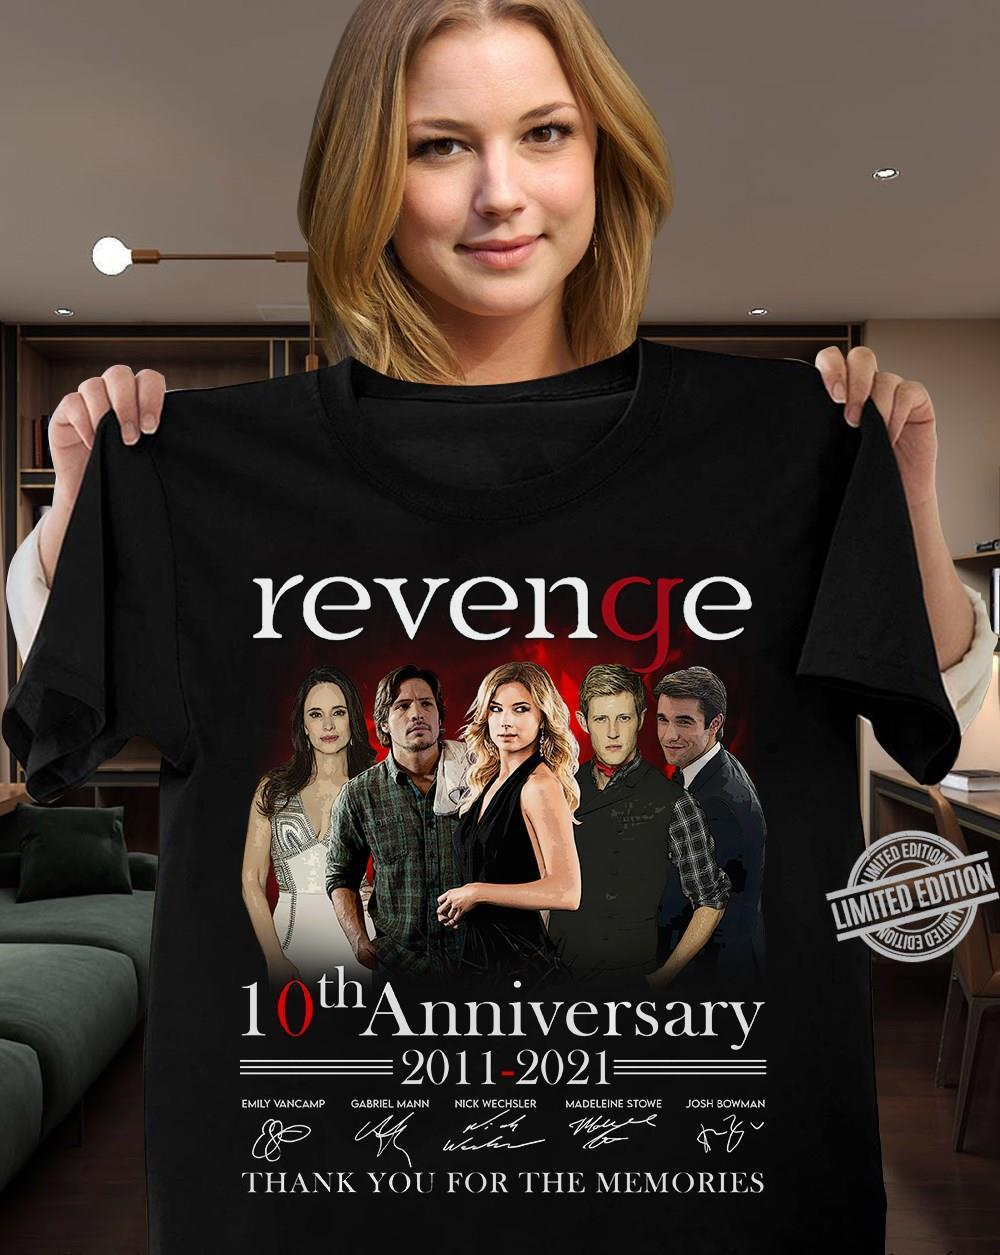 Revenge 10th Anniversary Thank You For The Memories 2011-2021 Shirt